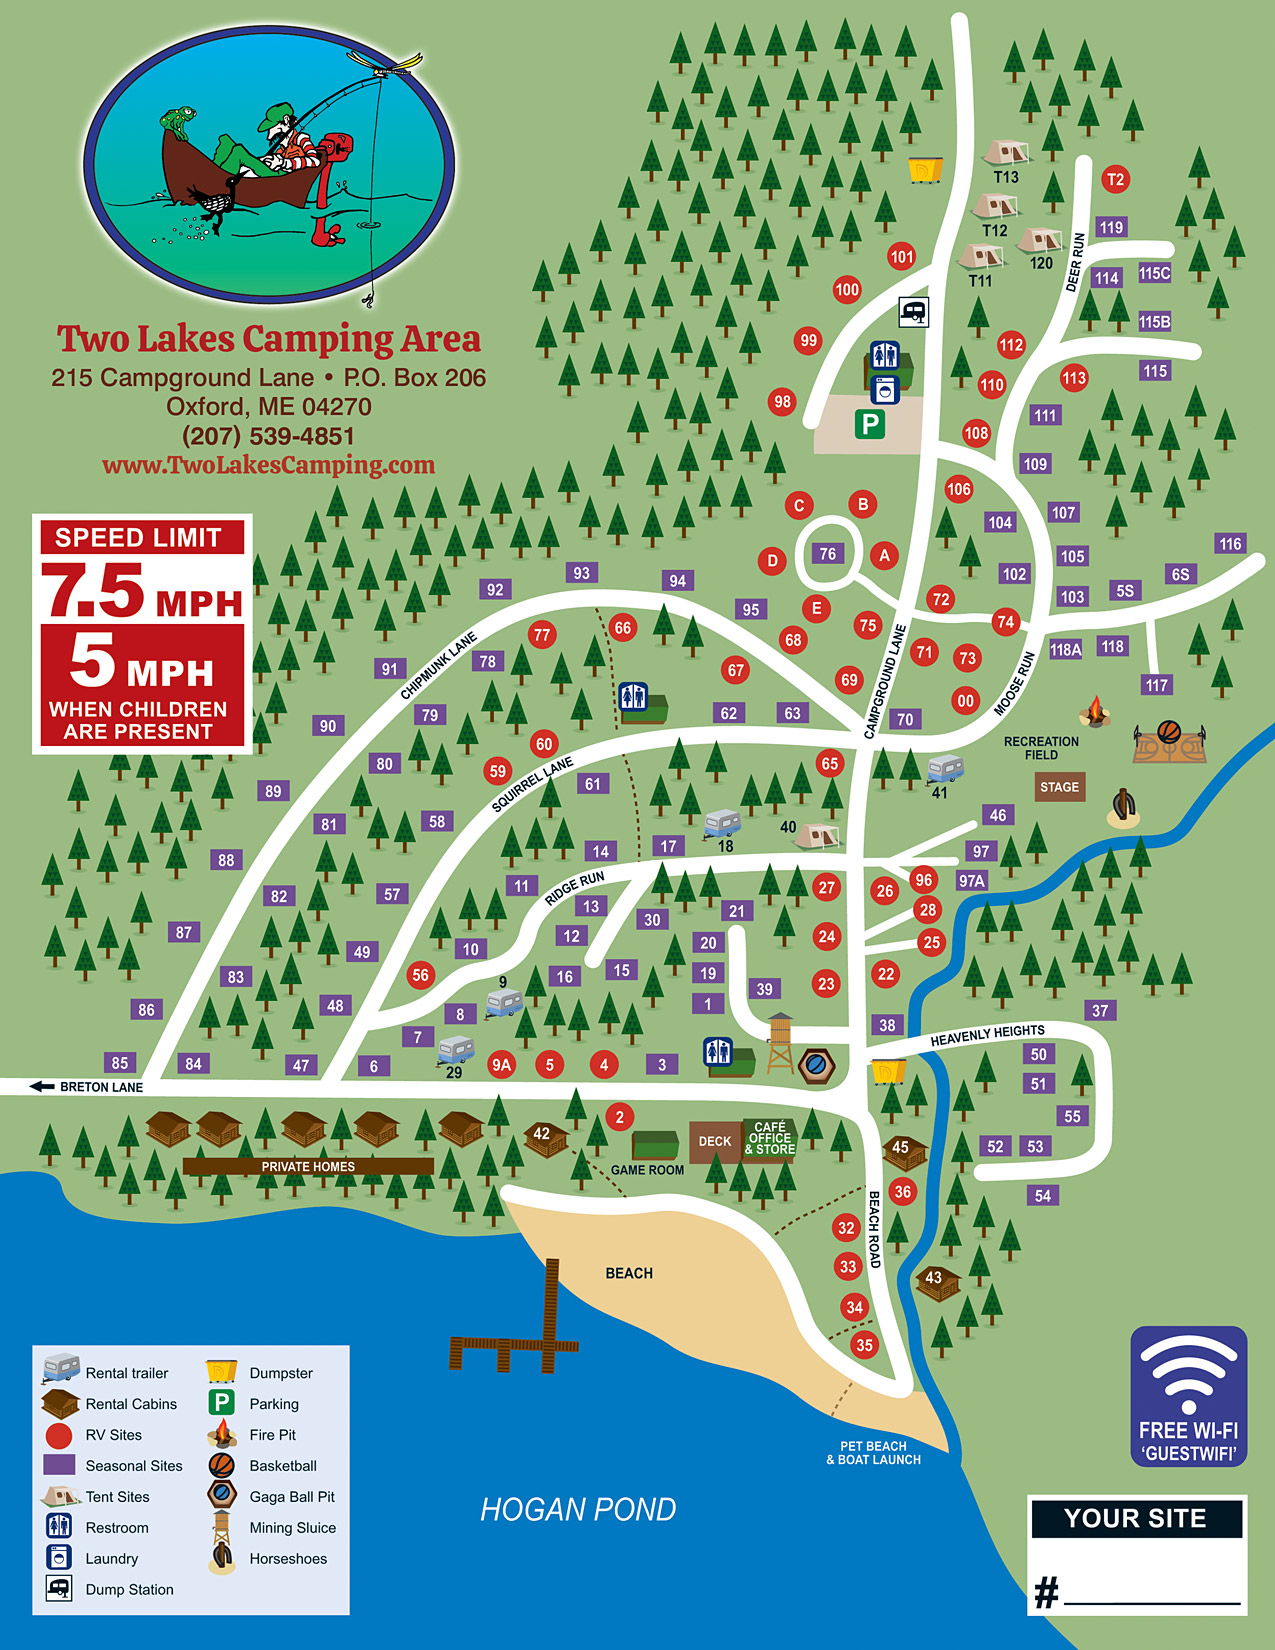 Two Lakes Camping Area Site Map